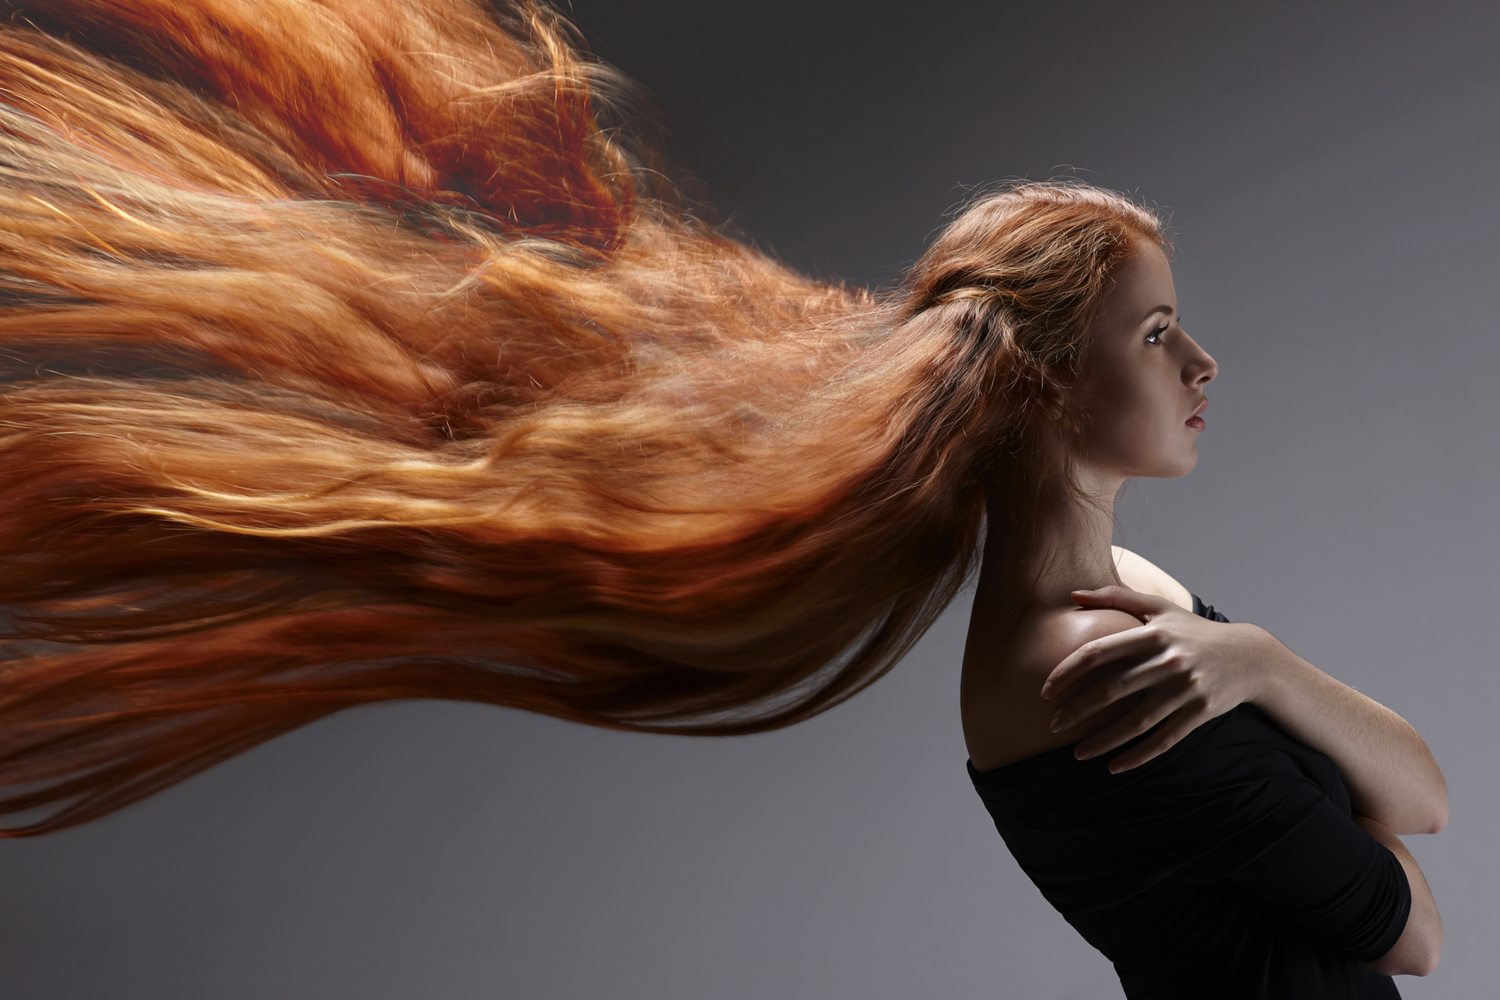 Trust The Hair Styling Experts At Gravity Hair Studio For All Your